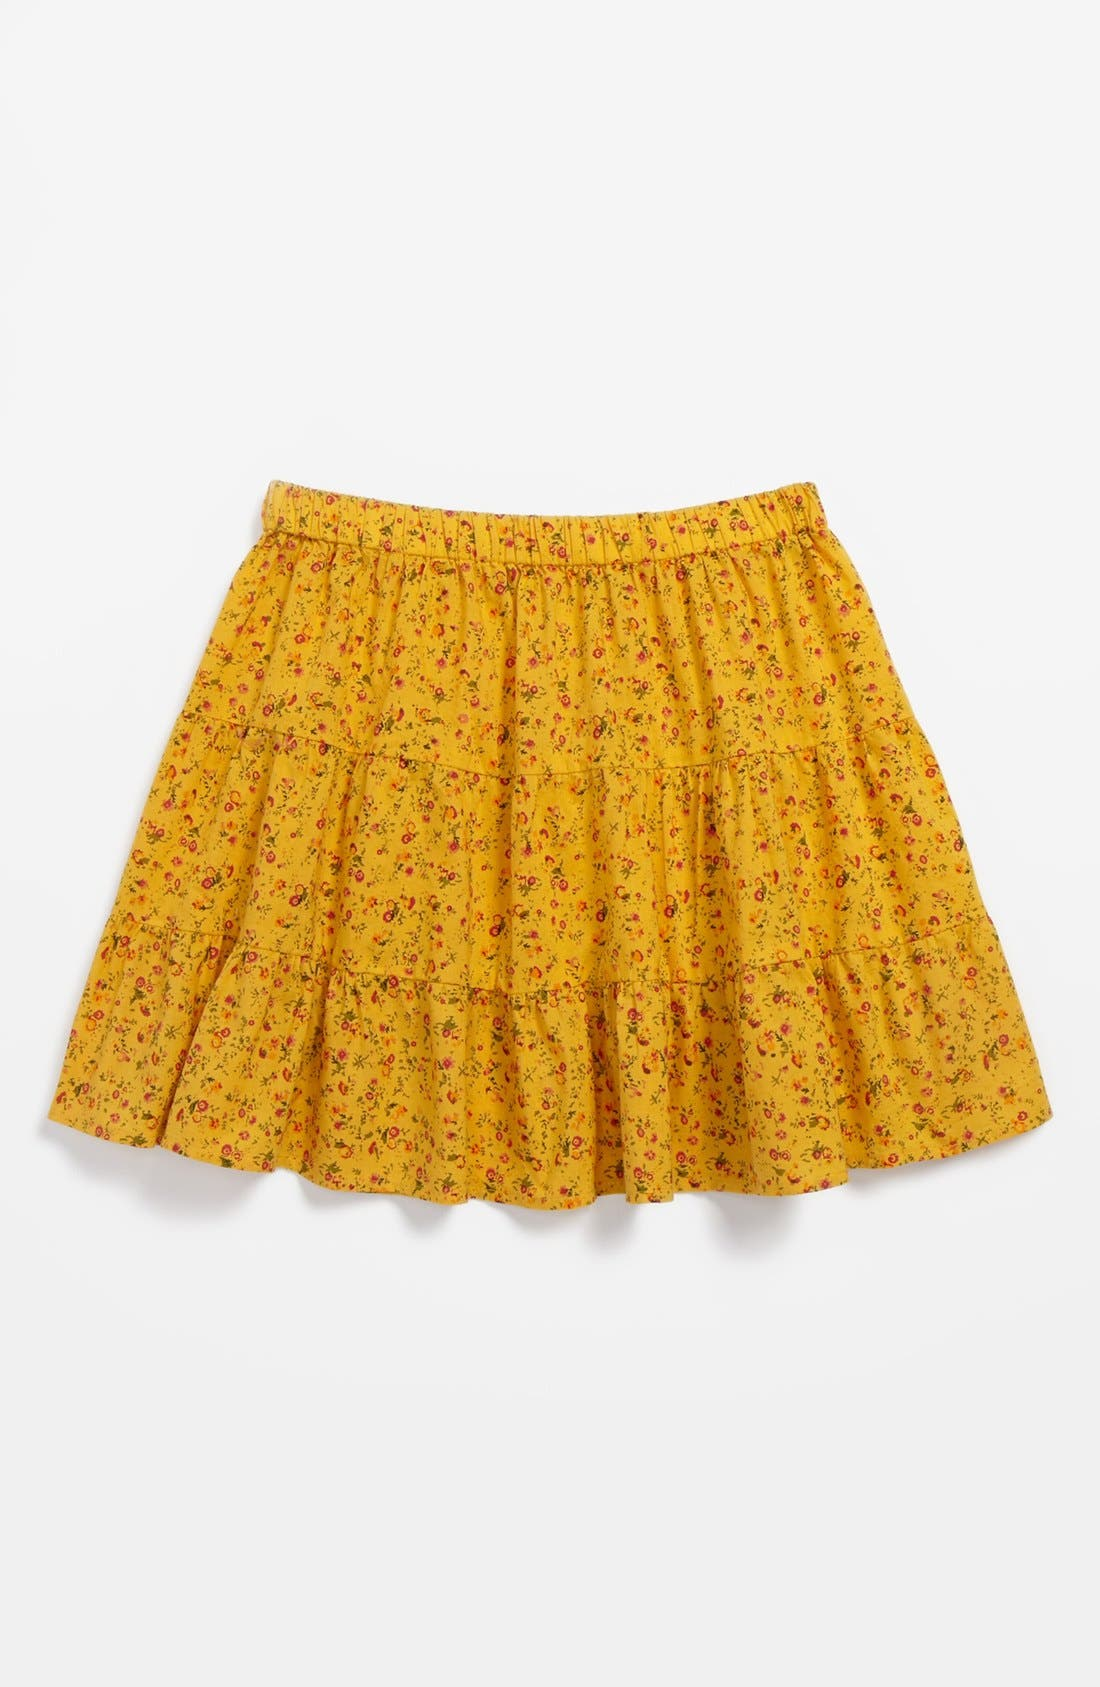 Alternate Image 1 Selected - Peek 'Alli' Skirt (Toddler Girls & Little Girls)